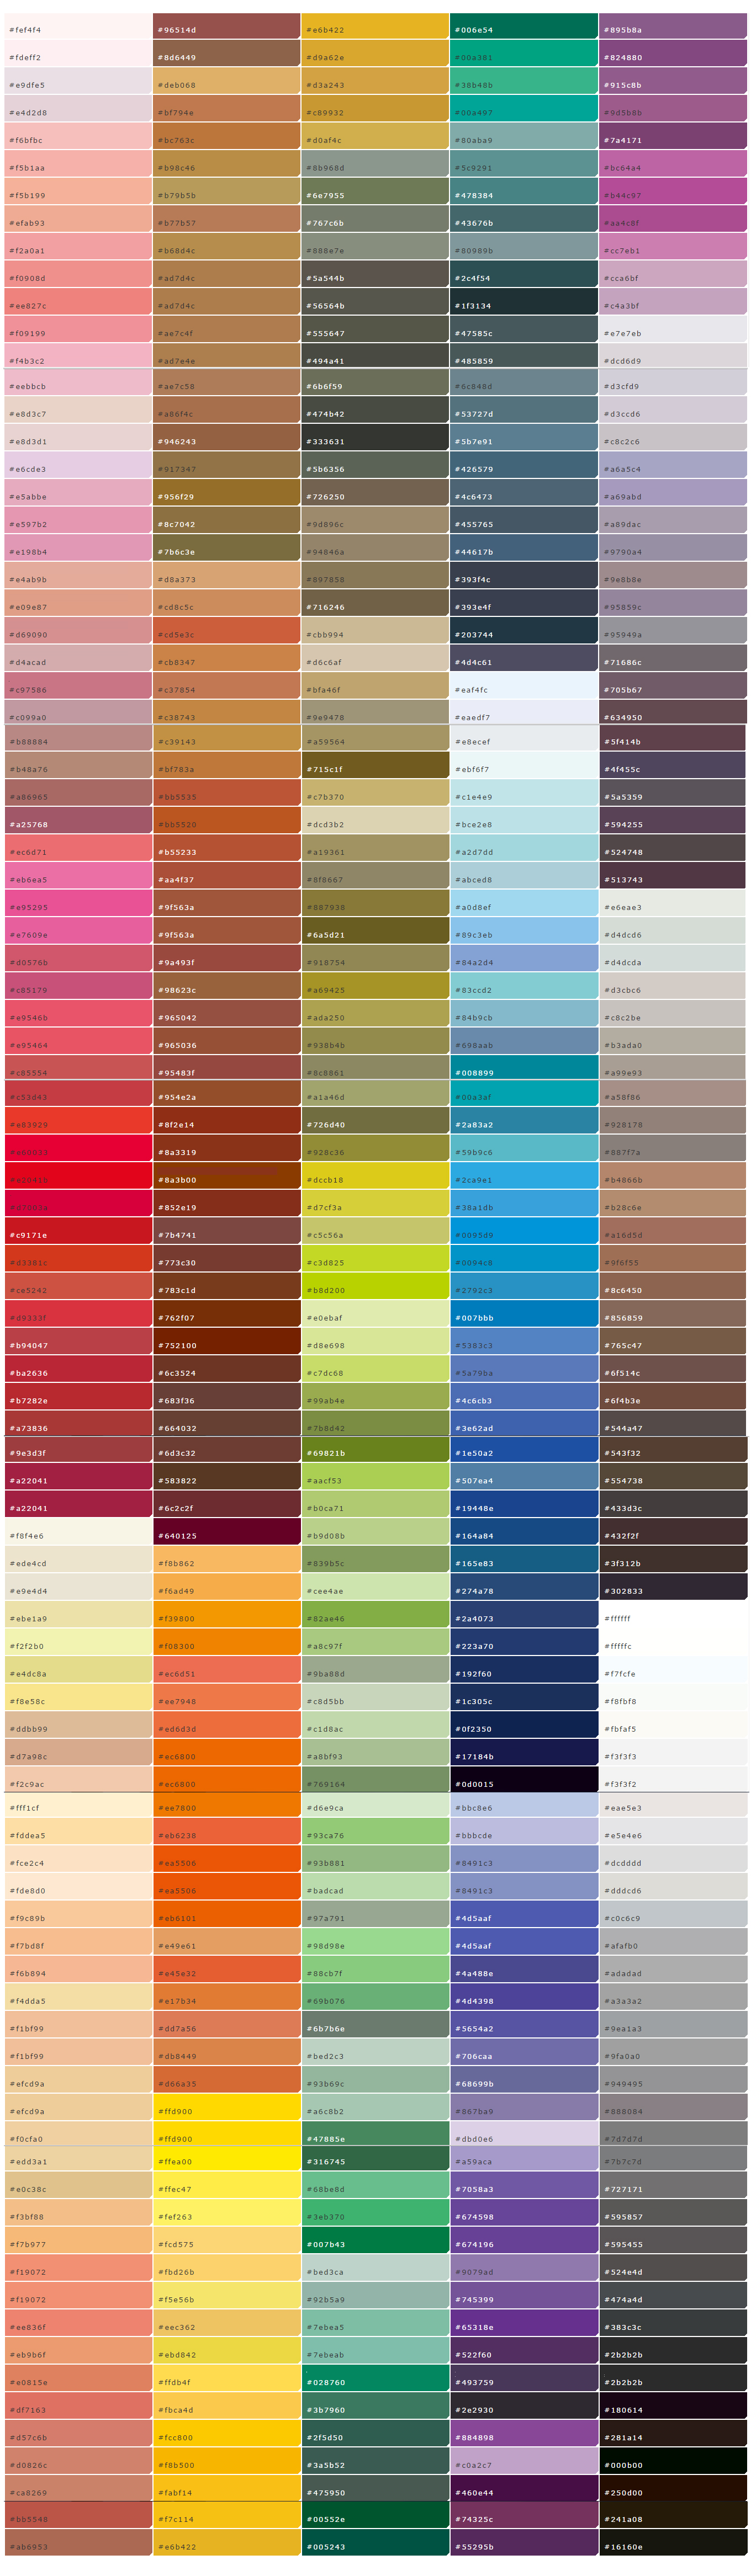 gb-color-chart.jpg